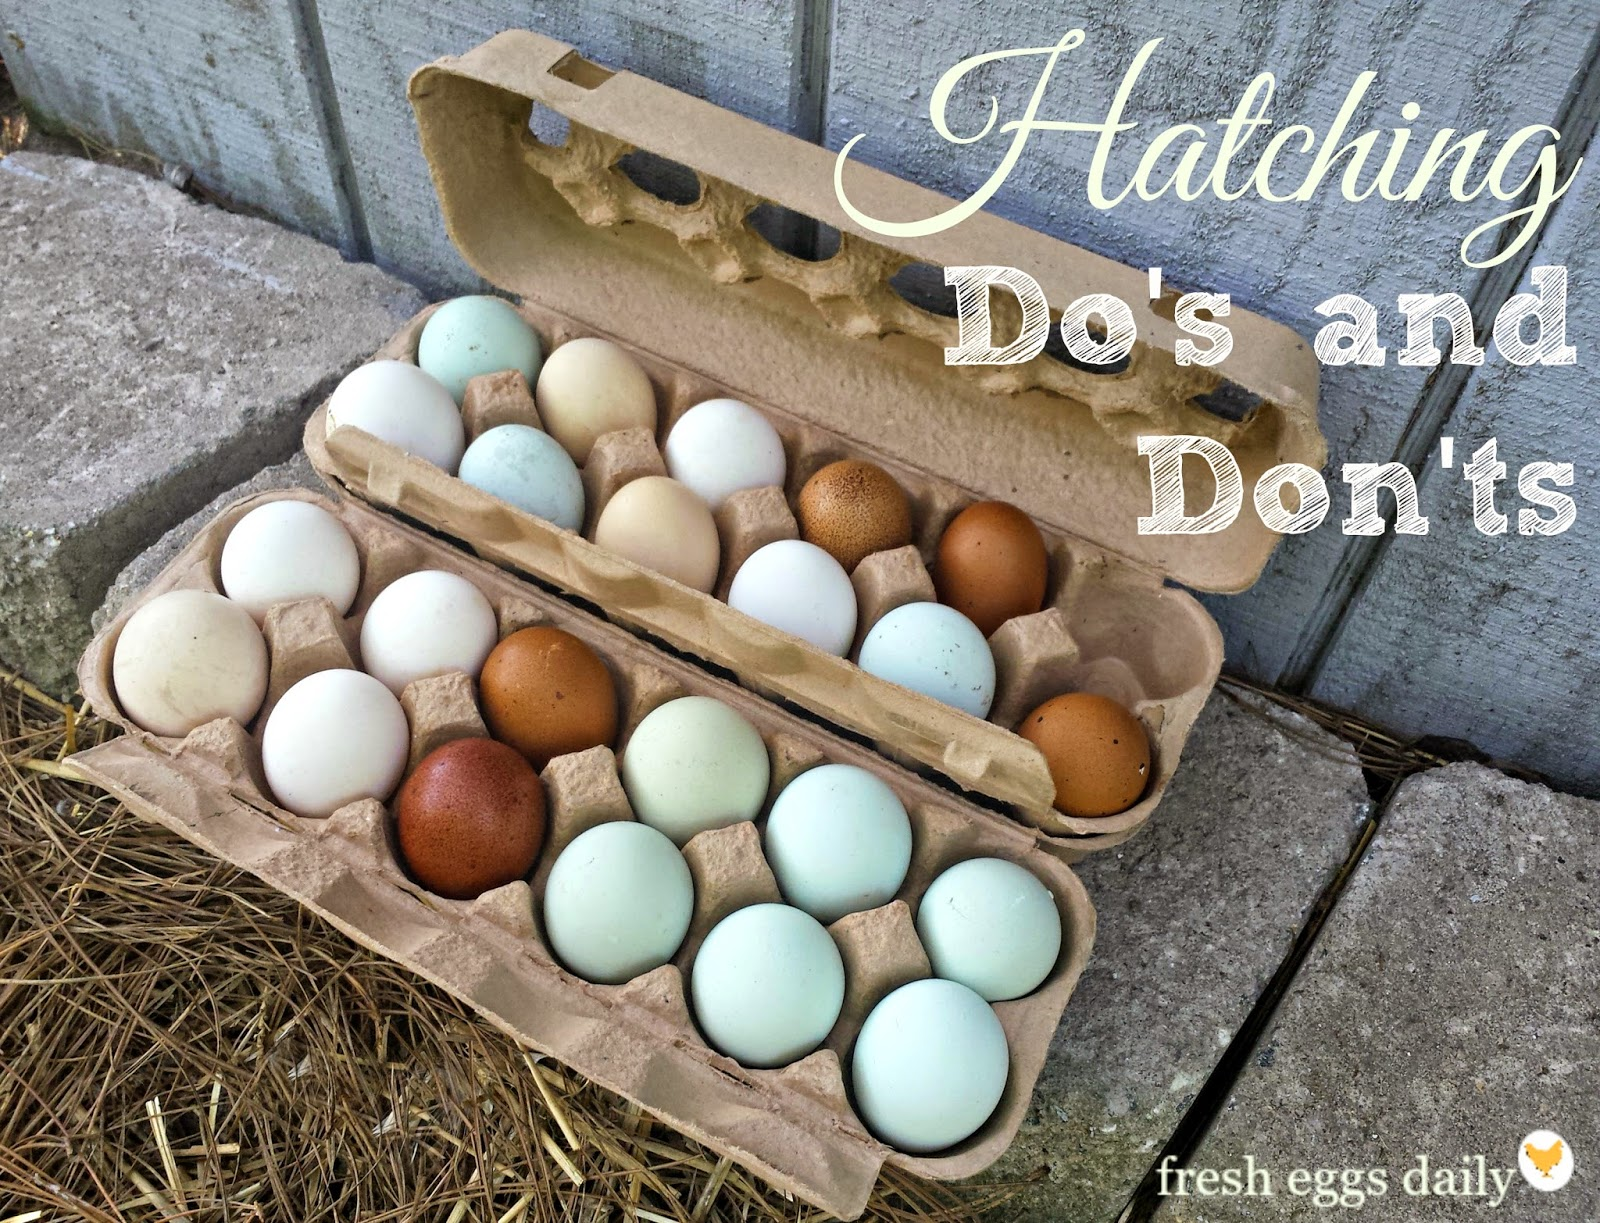 hatching dos and donts egg selection handling and